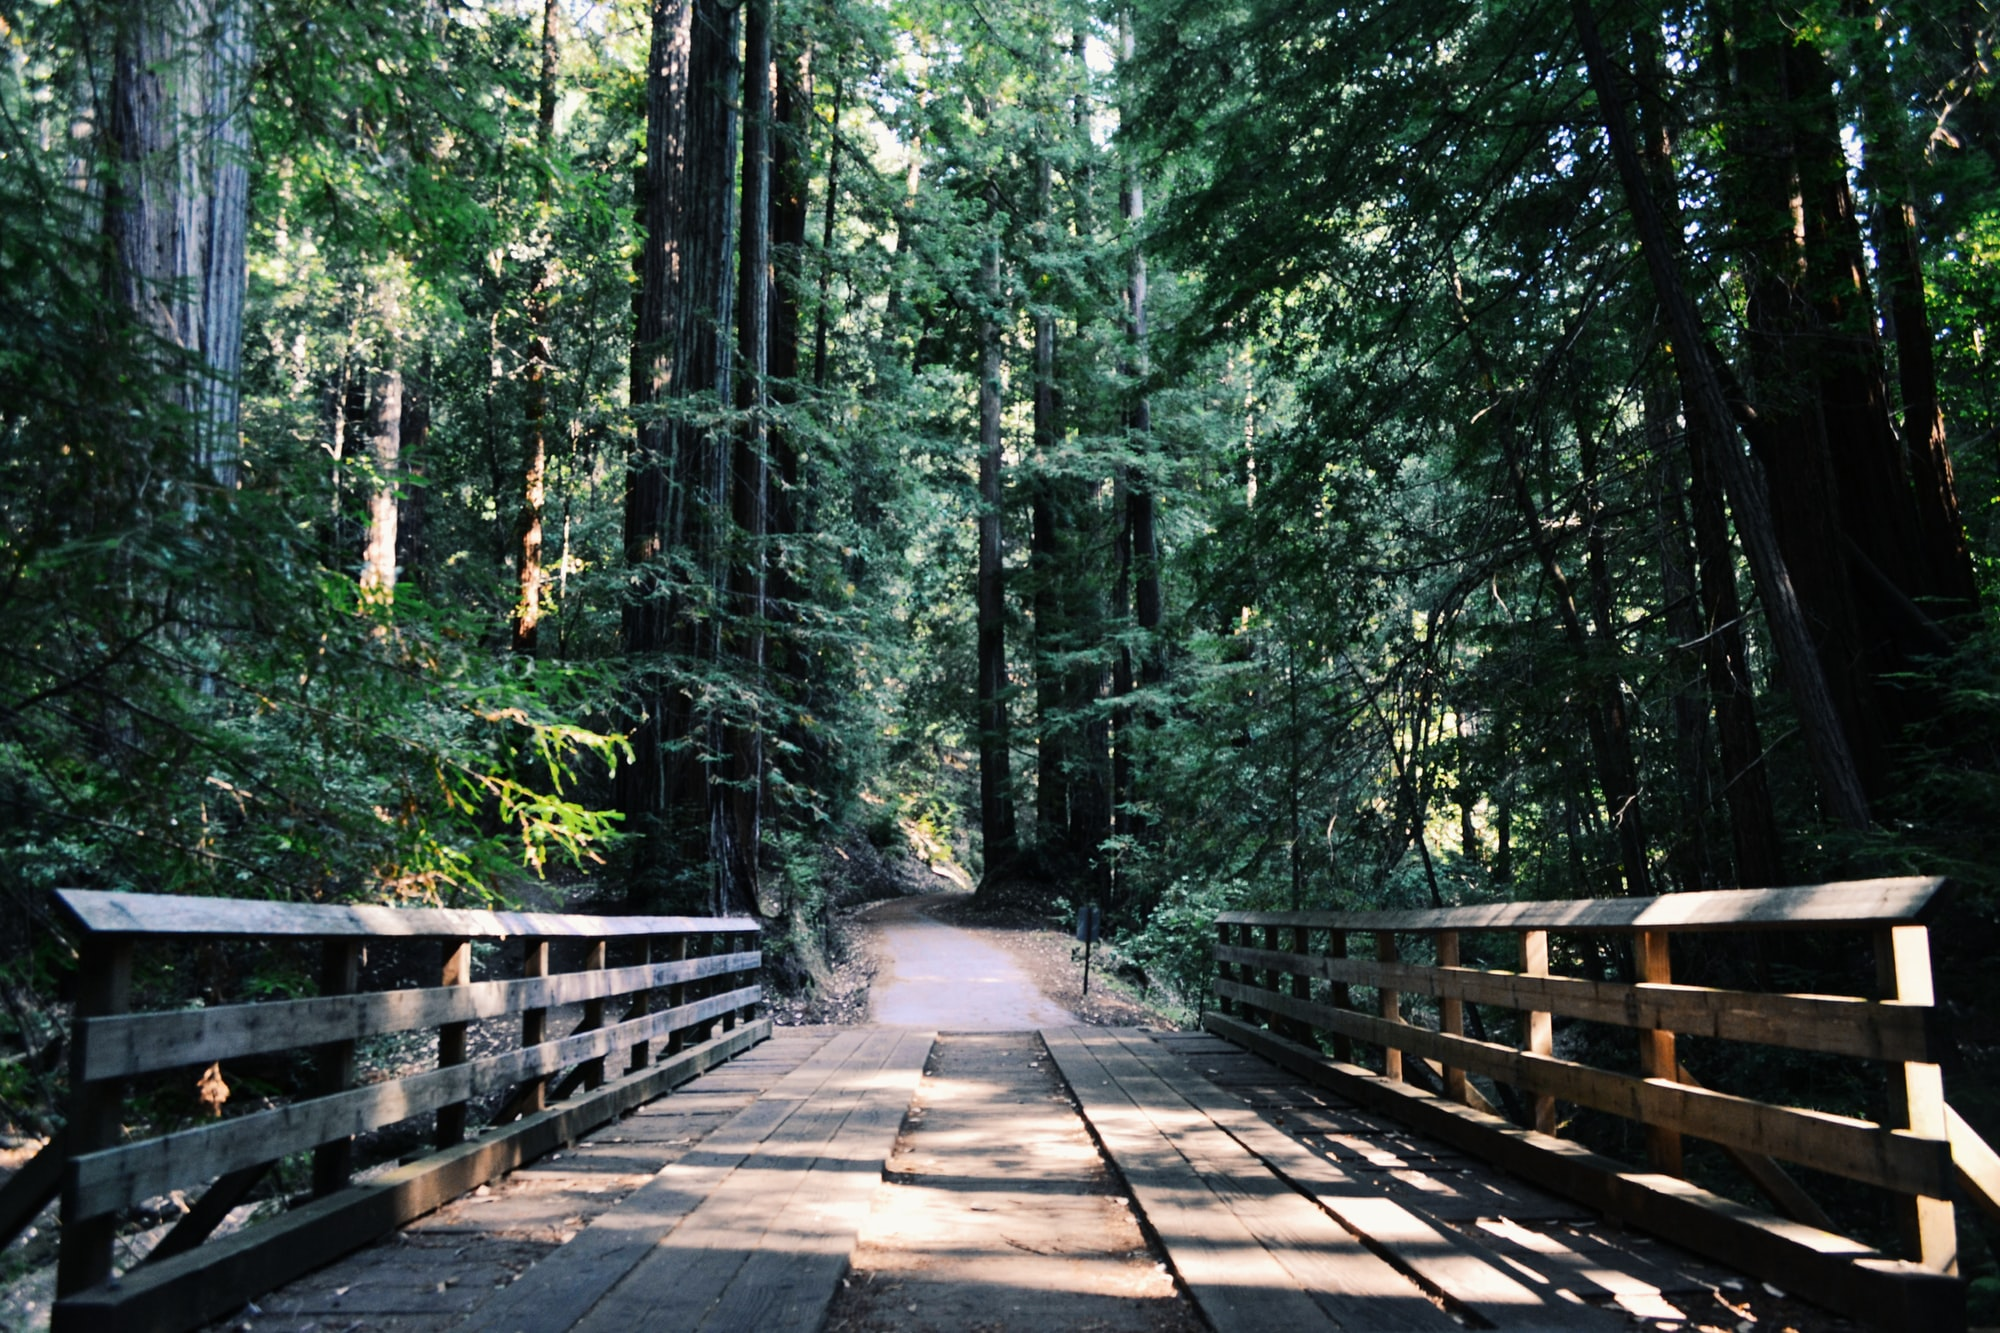 Wooden bridge on a forest path